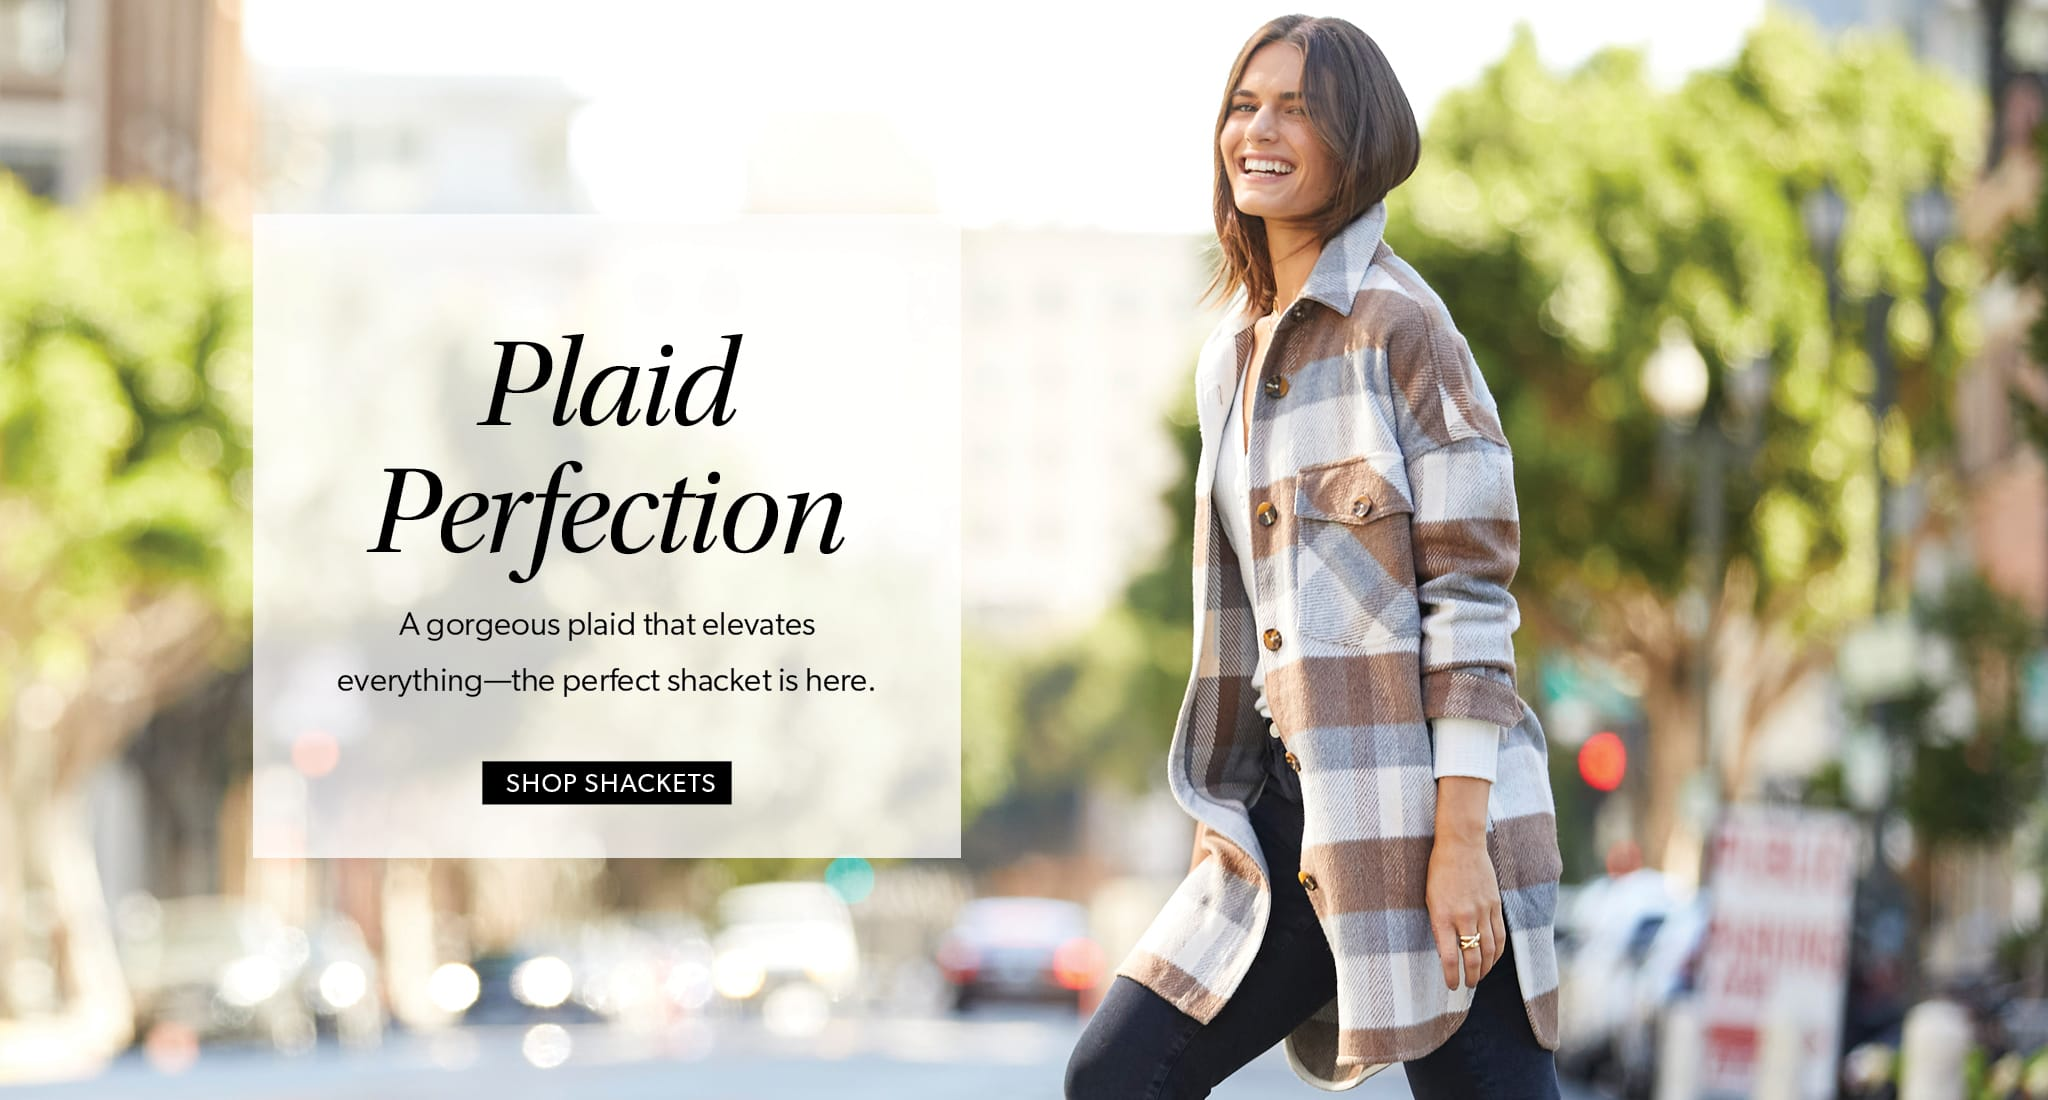 Plaid Perfection. A gorgeous plaid that elevates everything—the perfect shacket is here. SHOP SHACKETS.